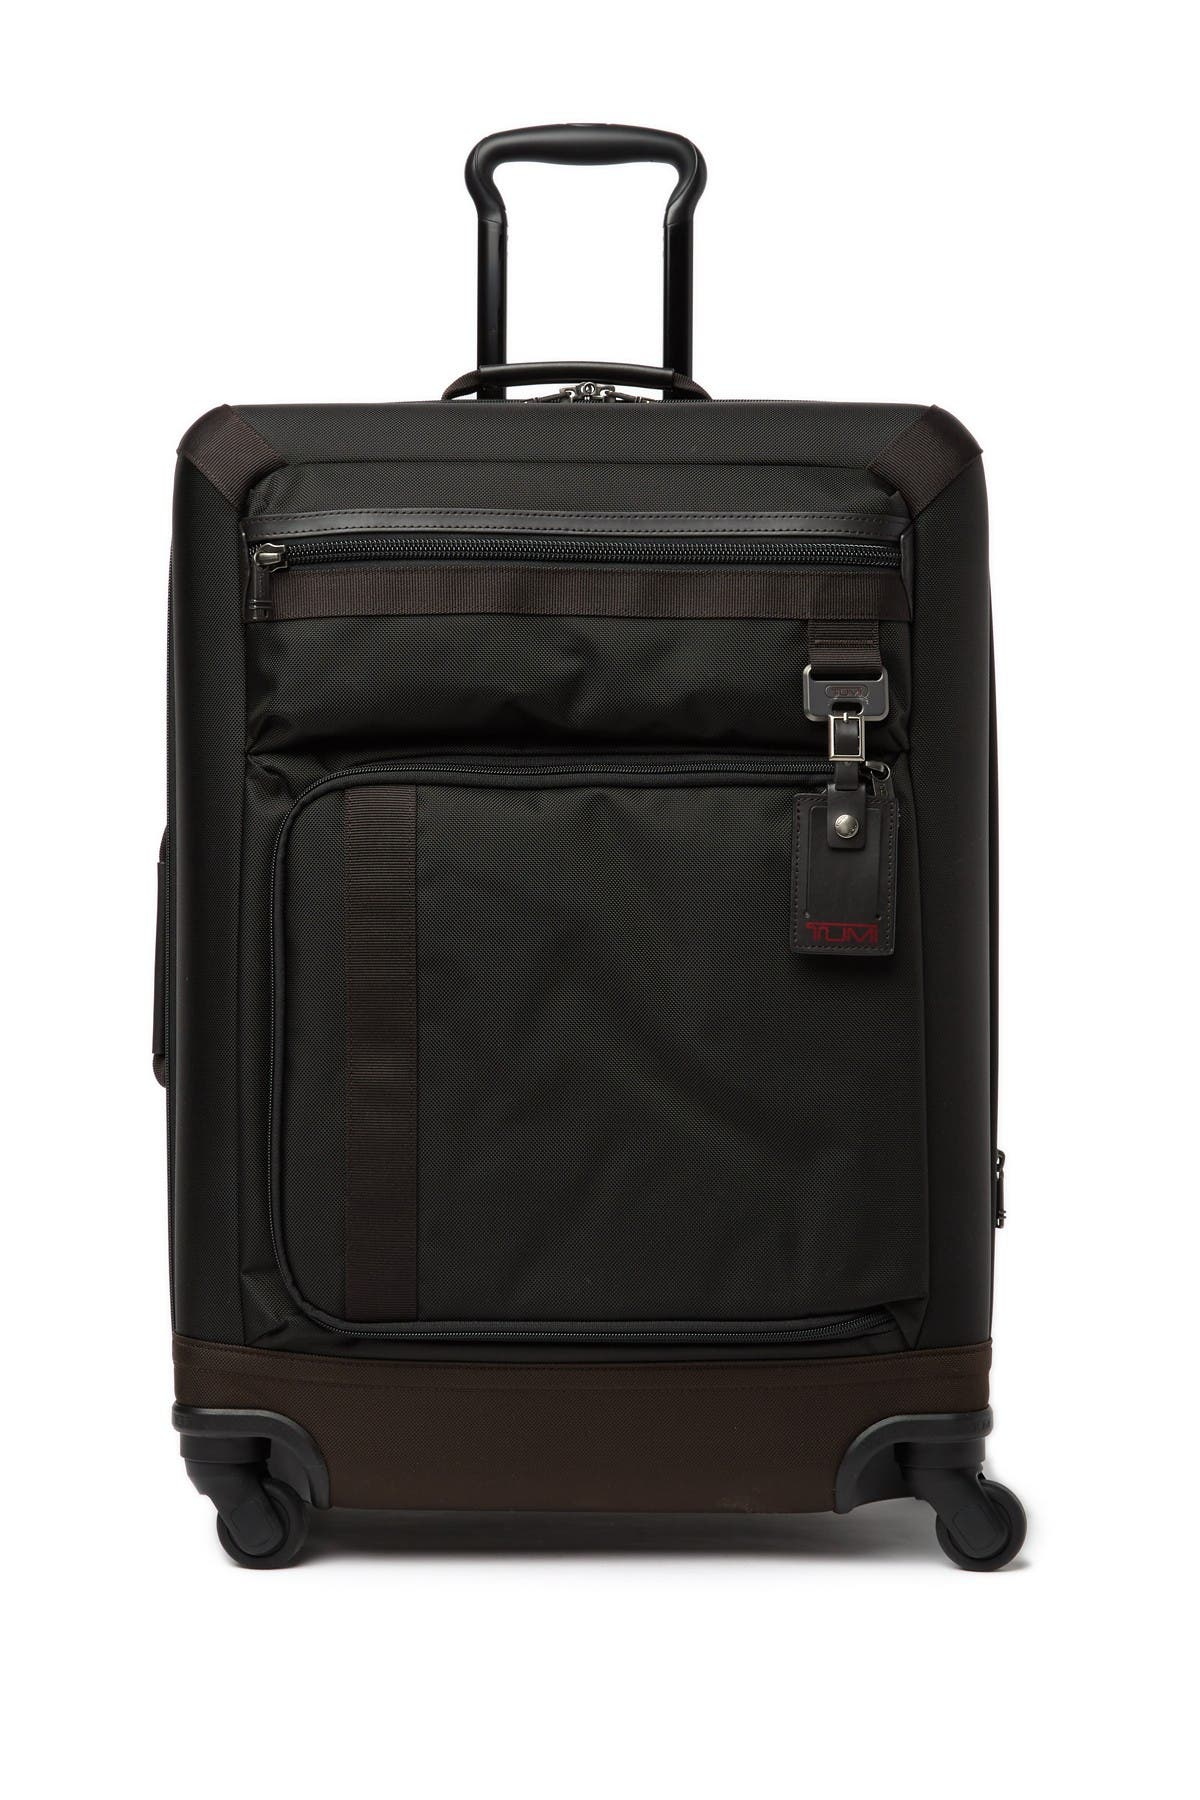 "Image of Tumi Windmere Short-Trip 26"" Packing Case"